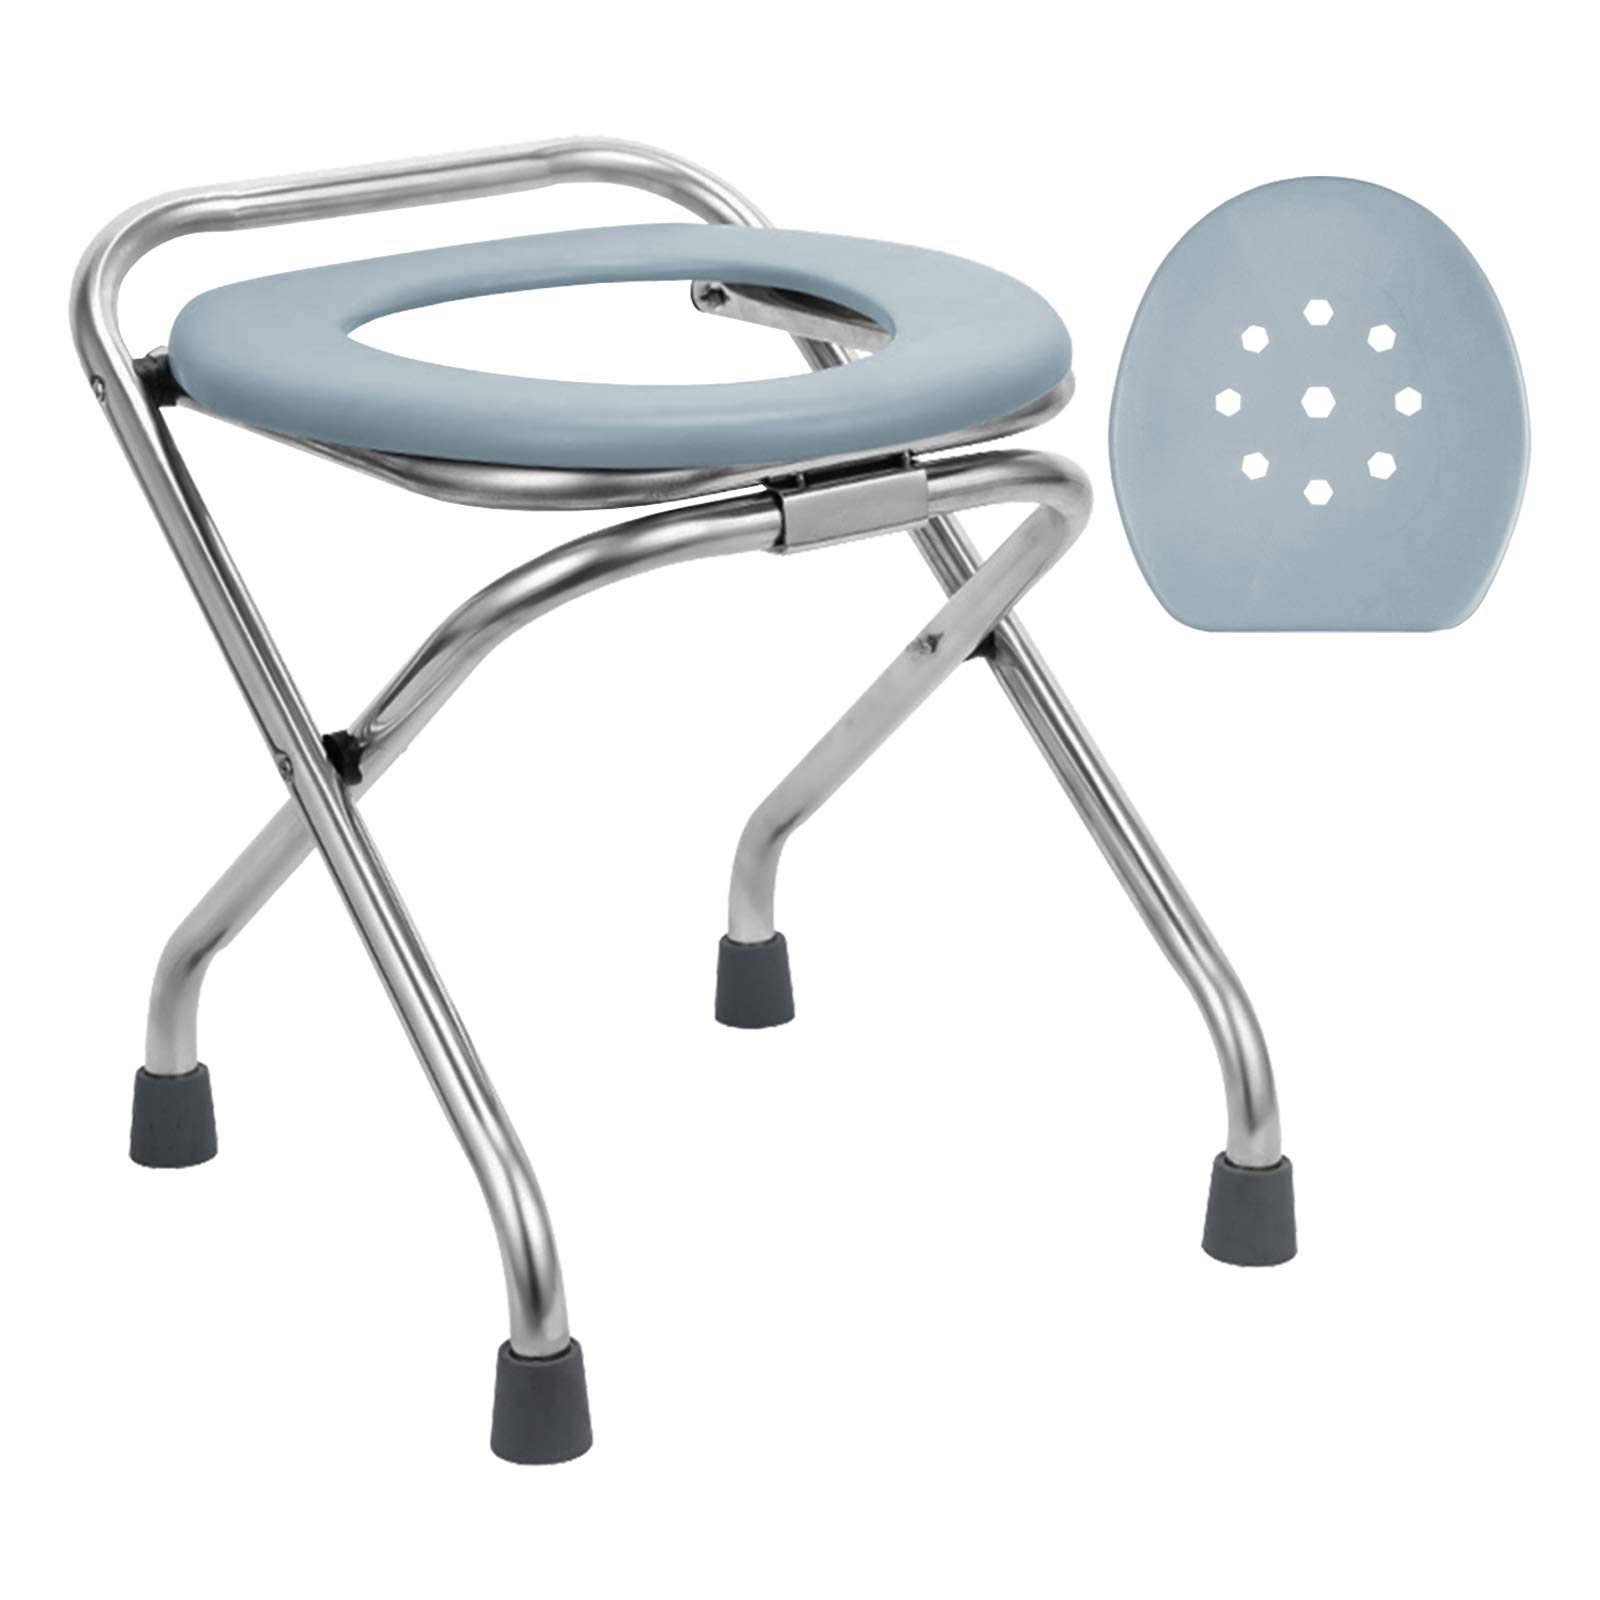 """BLIKA 16.5"""" High Stainless Steel Folding Commode Portable Toilet Seat, Commode Chair with Lid, Camp Toilet Seat Perfect for Camping, Hiking, Trips, Construction Sites"""